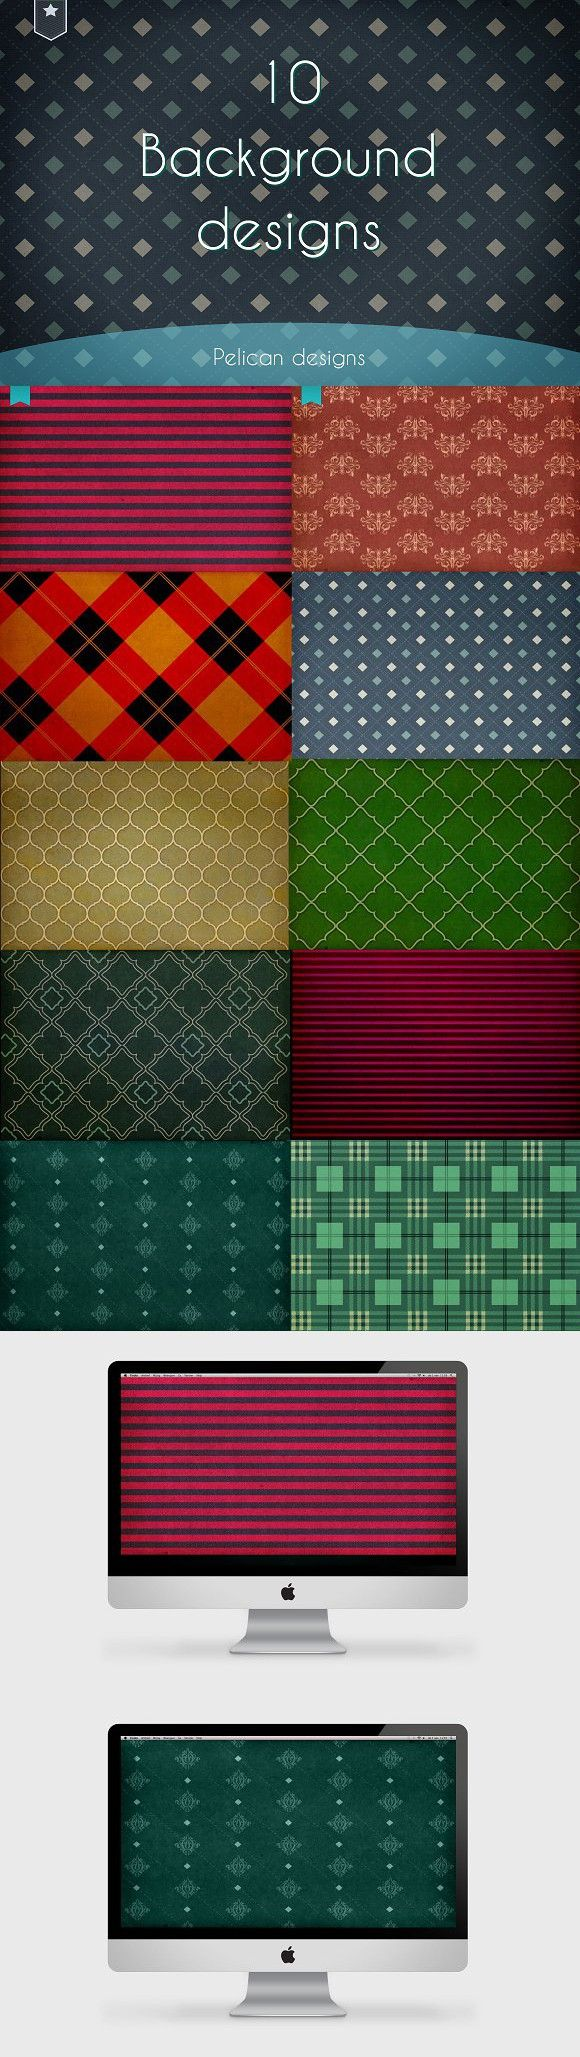 Background/desktop image set. Patterns. $4.00